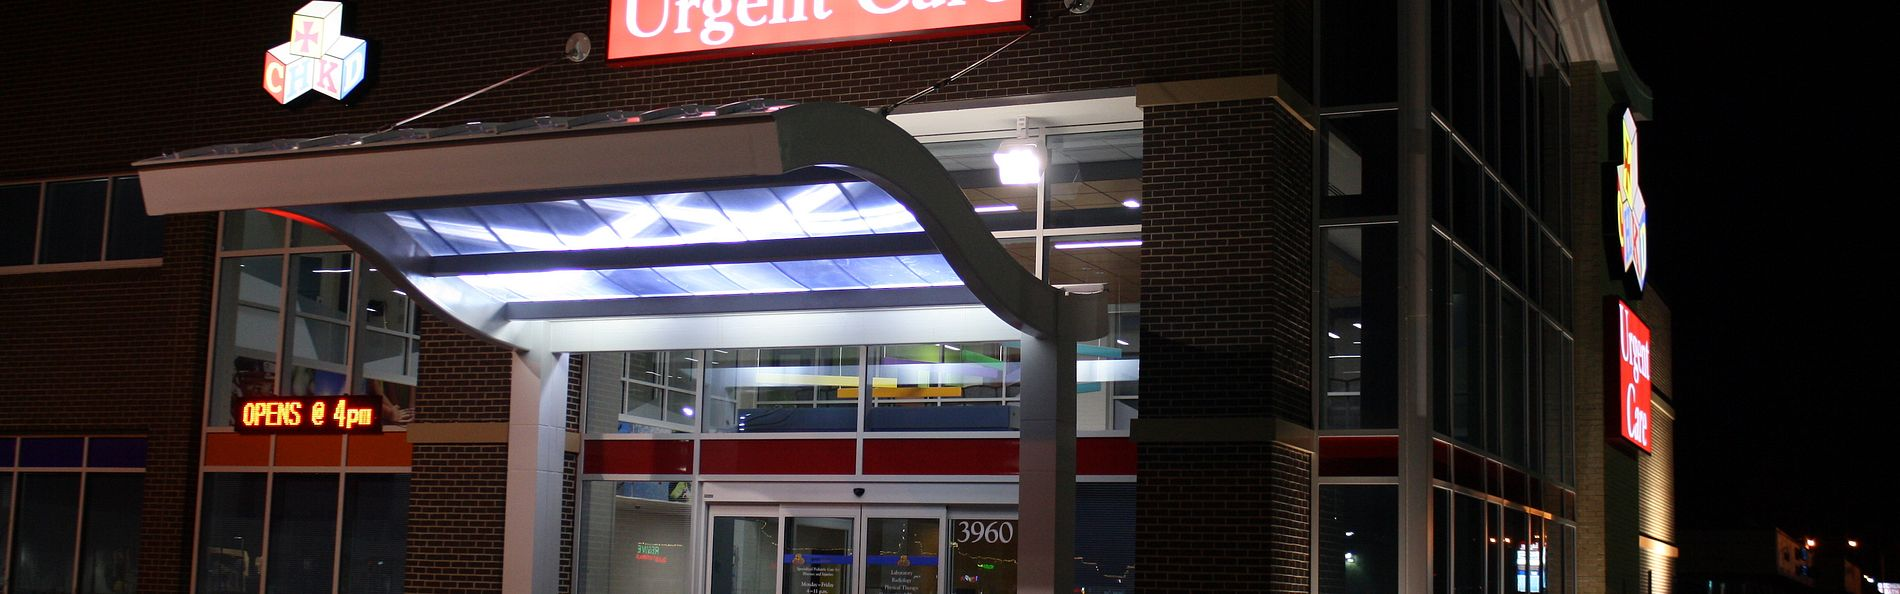 Night shot of the urgent care at the Children's Hospital of the King's Daughters